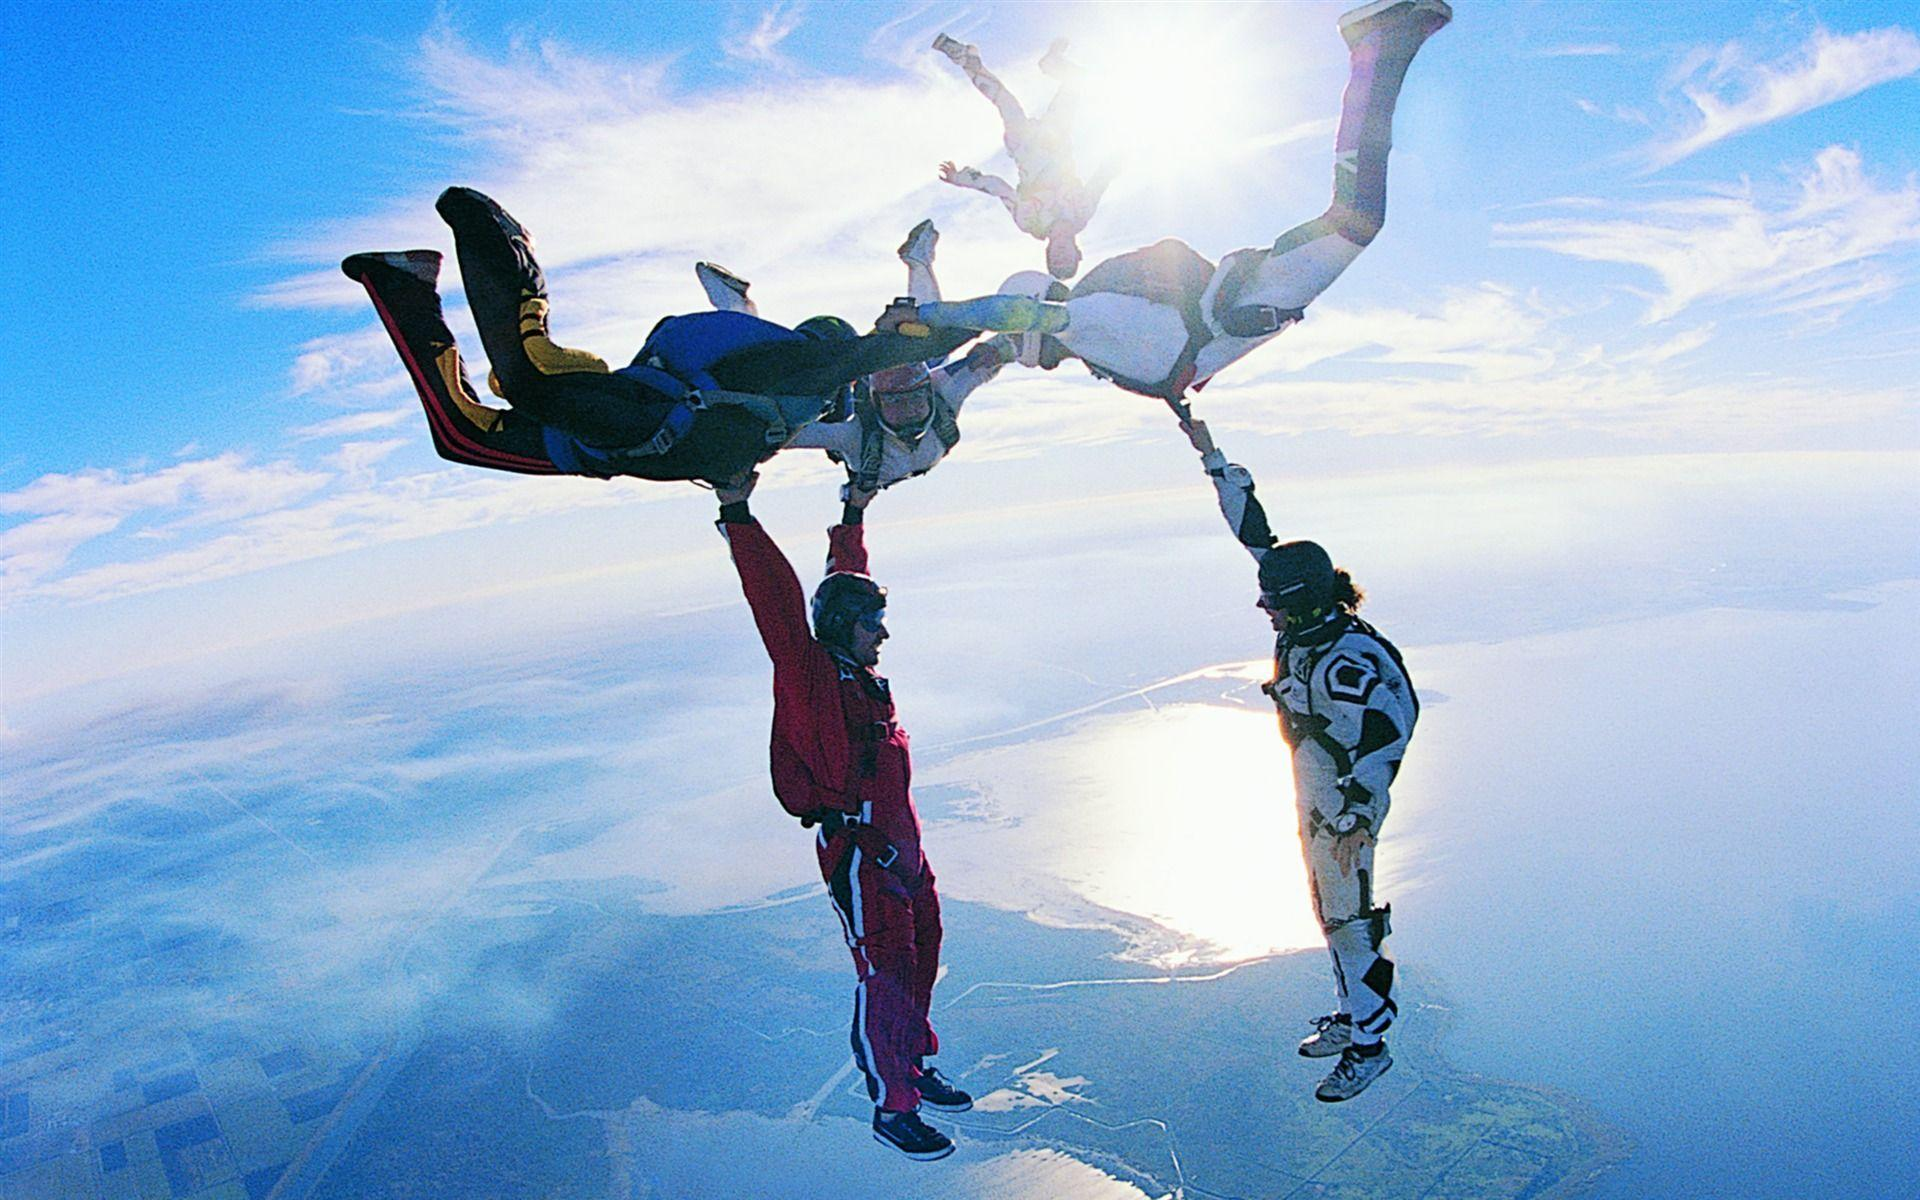 skydiving sports extreme amazing clouds jumping sport above bungee star sky wallpapers 4k diving airplane difference jump between uhd paracaidismo